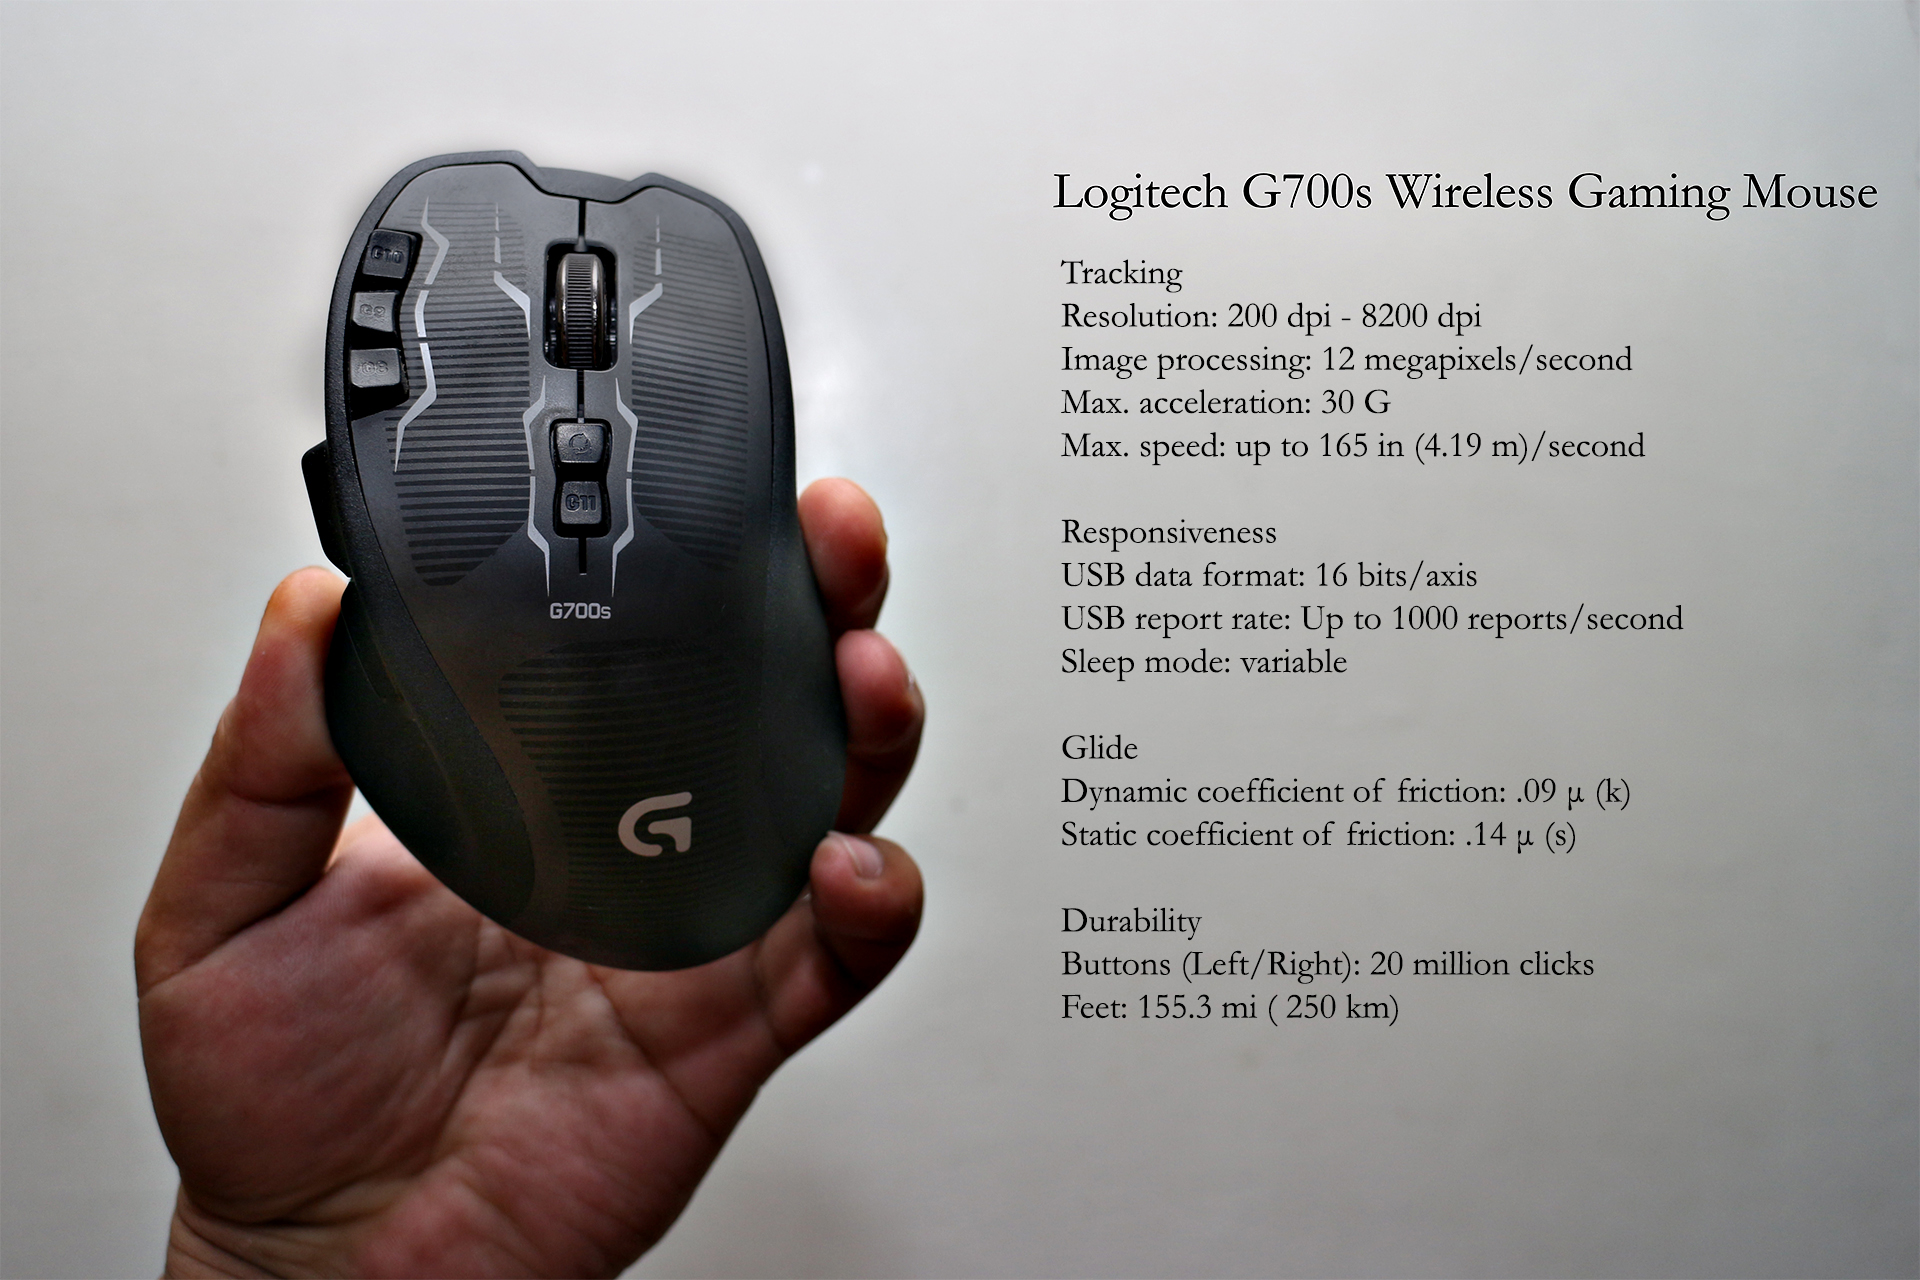 Logitech G700s Wireless Gaming Mouse Review - YugaTech